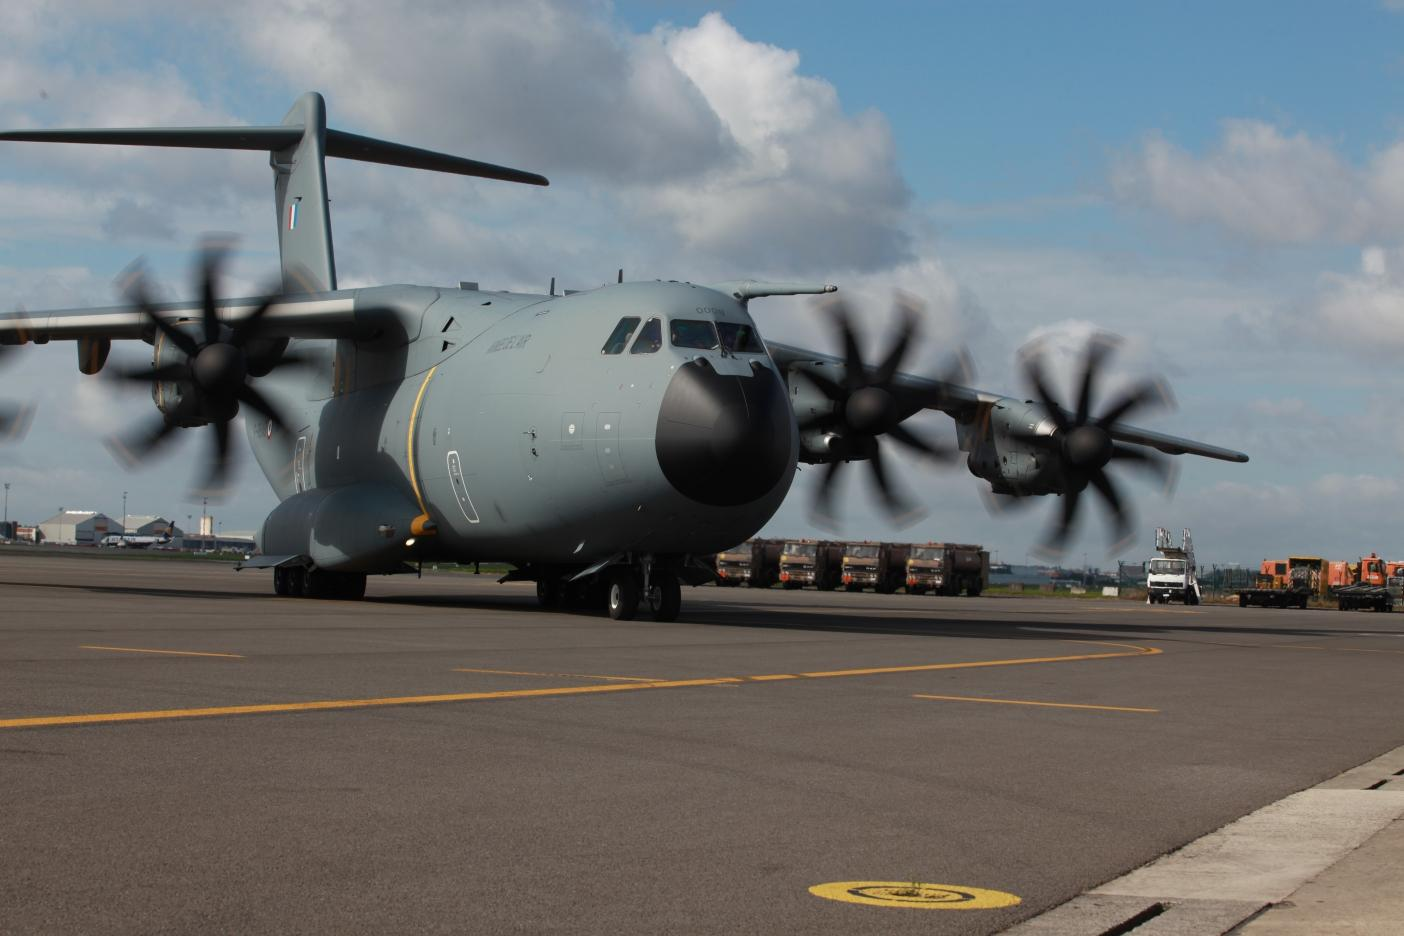 First international A400M mission successfully conducted